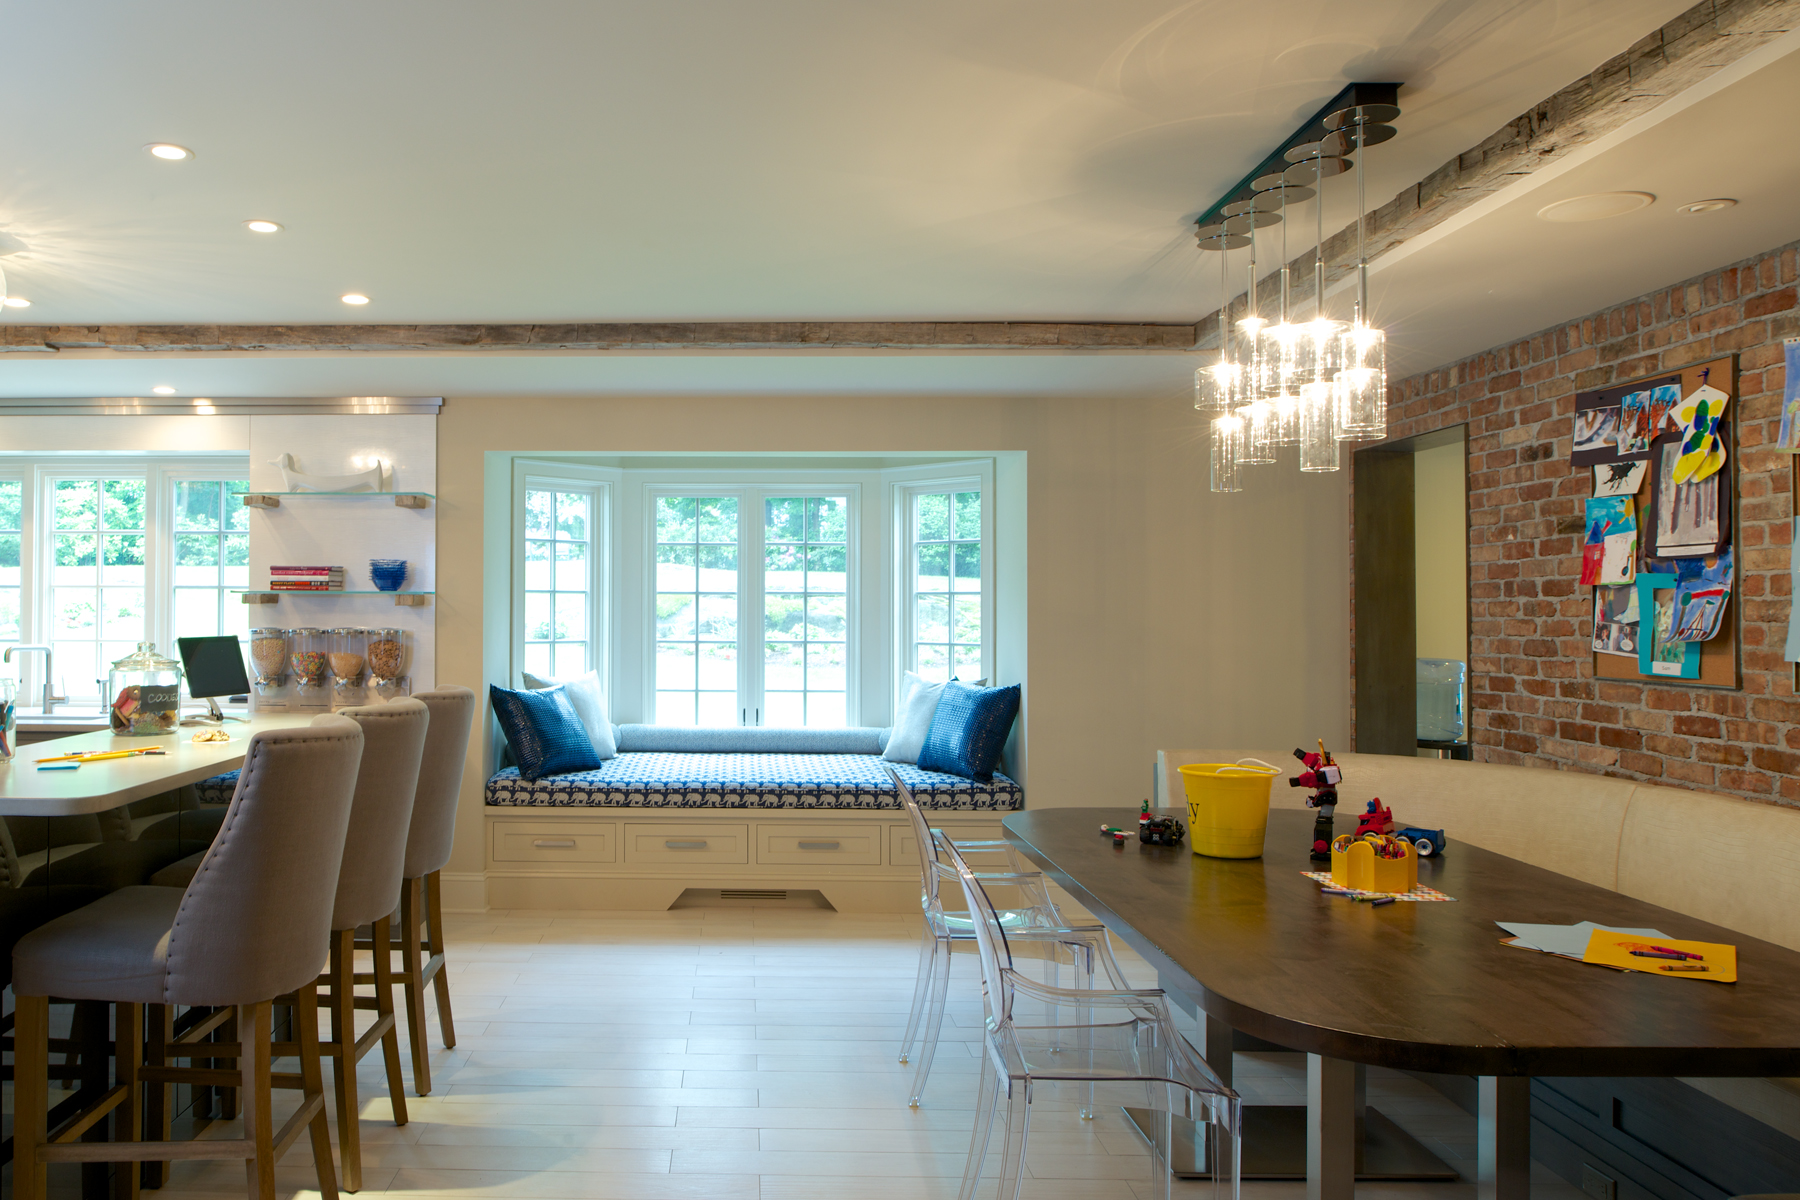 Expansive family-friendly kitchen features dining table with banquette seating and clustered pendant lighting, a built-in upholstered window seat and large island with raised seating area. Design by Jeff Eakley of Bilotta Kitchens.